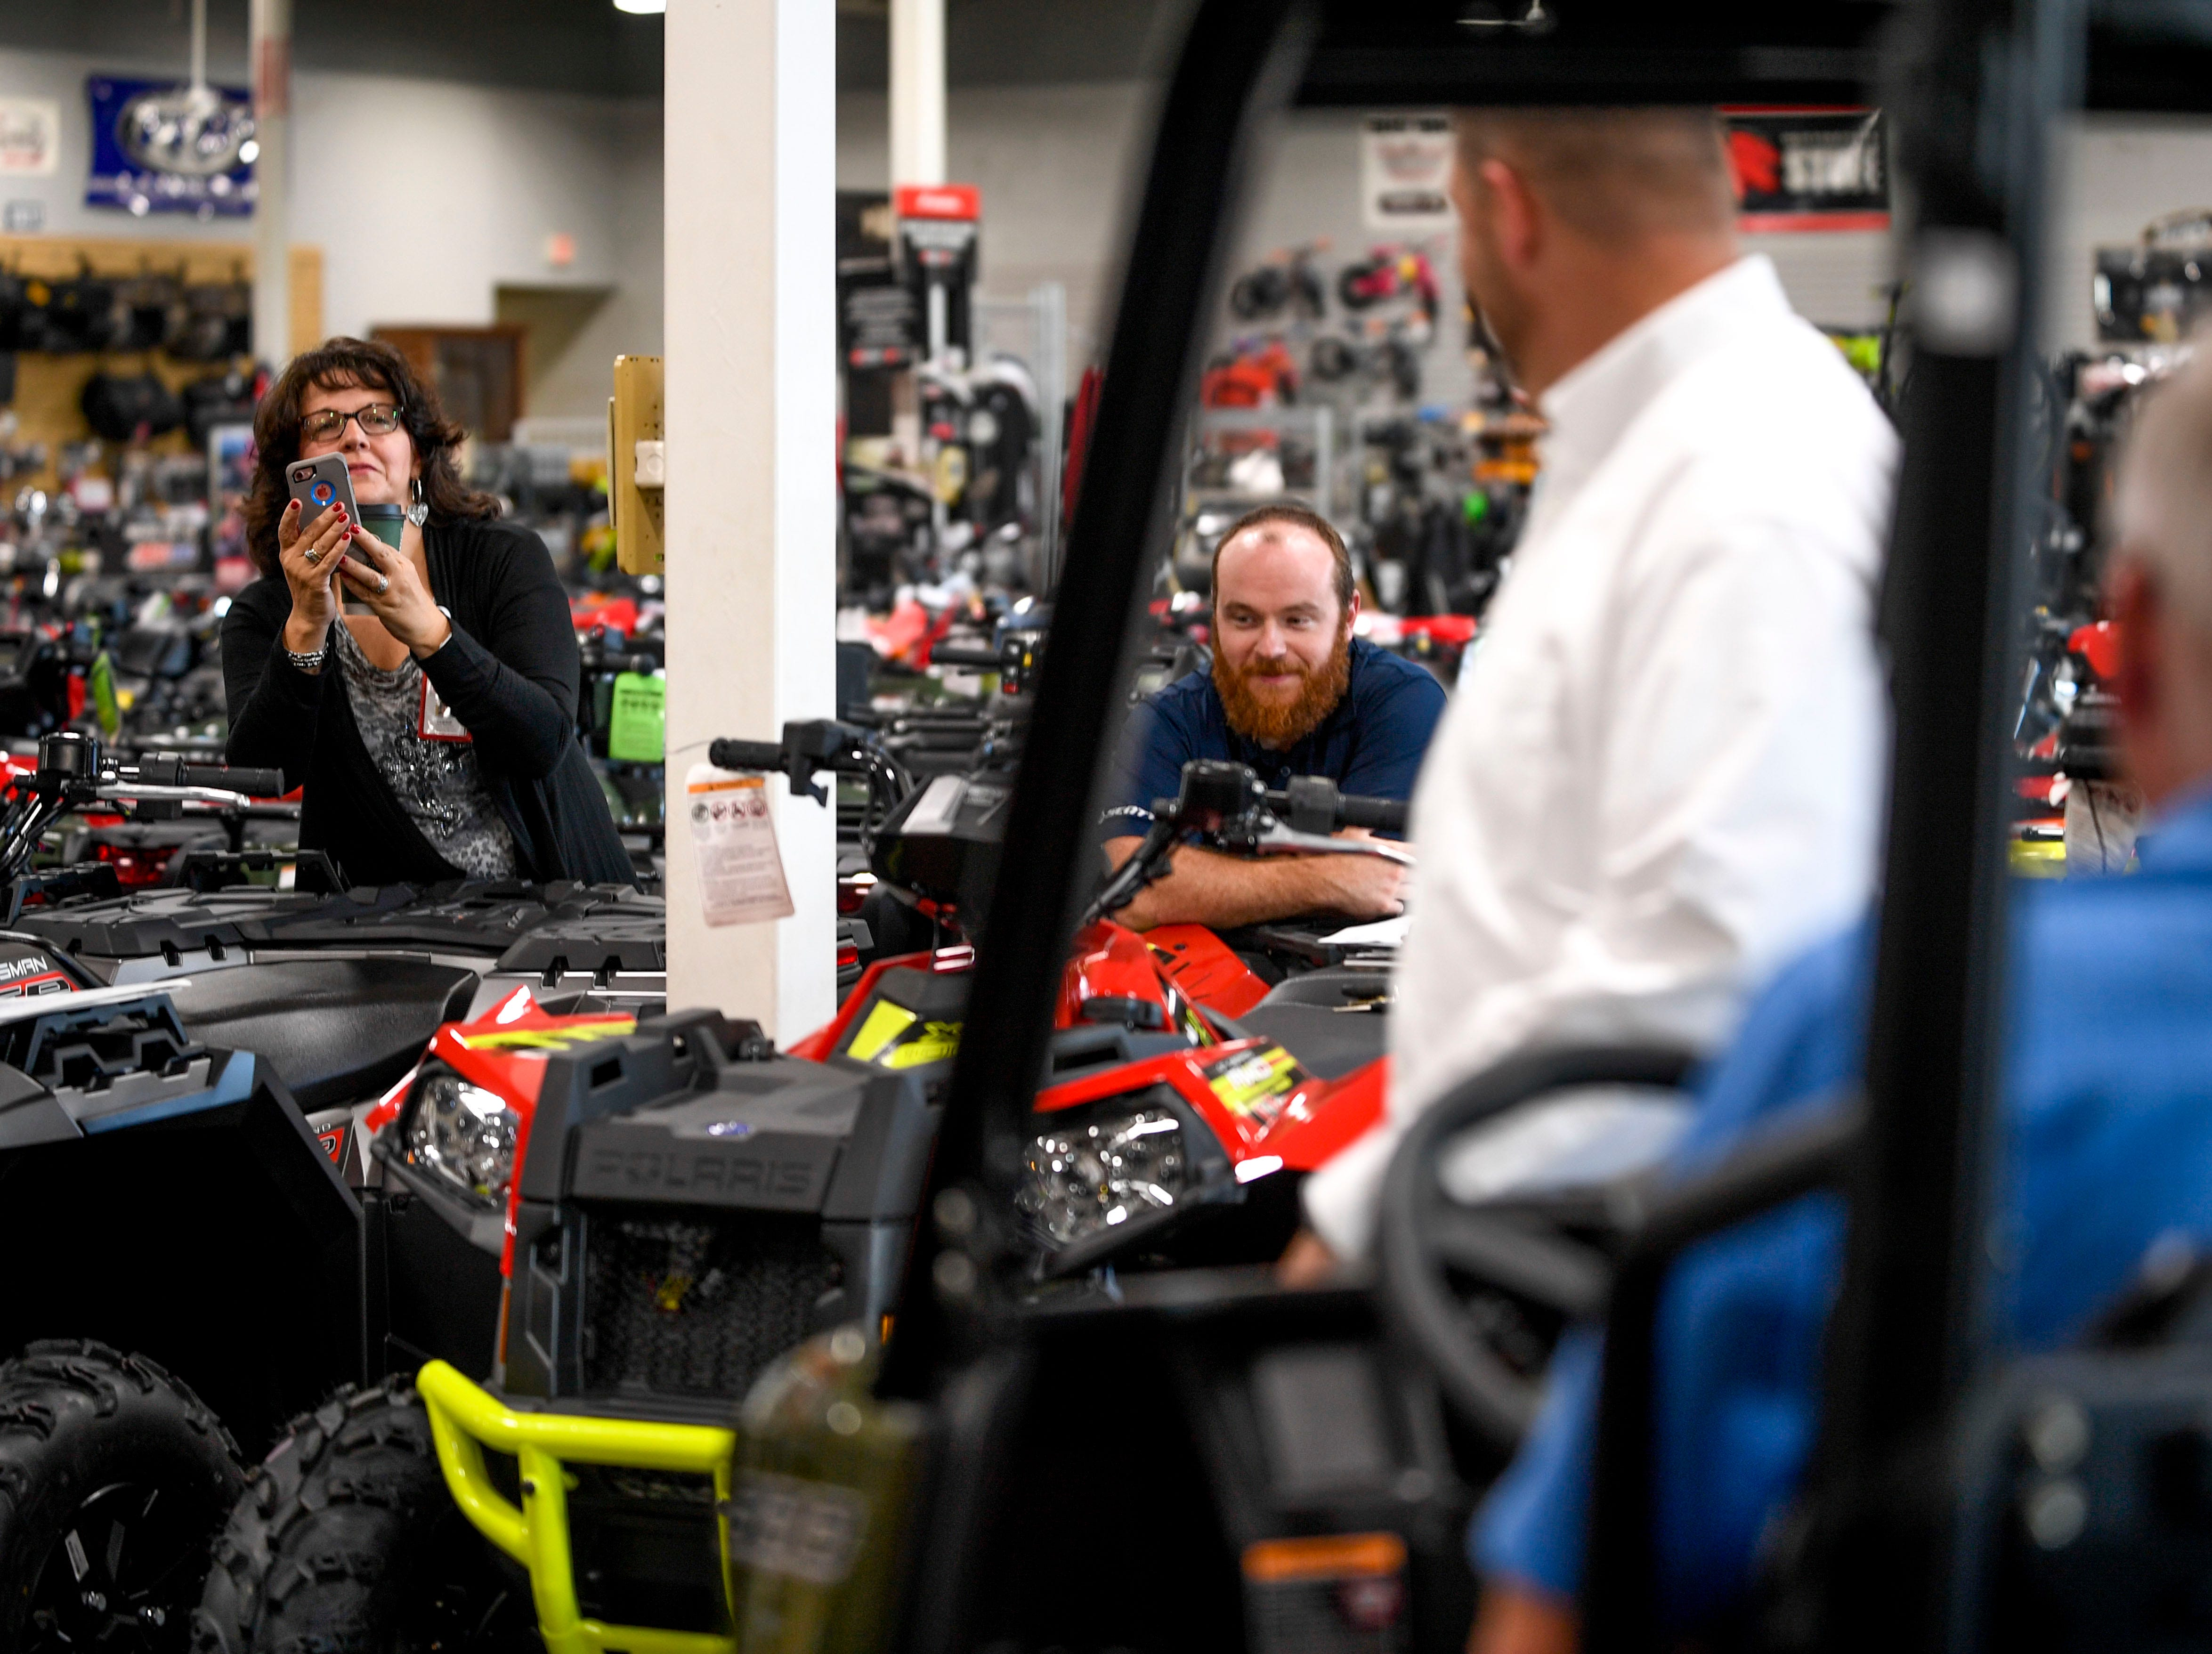 Cherie Parker, the public relations coordinator for Lifeline Blood Services, adjusts those involved in the ATV giveaway  at Bob's House of Honda in Jackson, Tenn., on Thursday, Sept. 20, 2018.